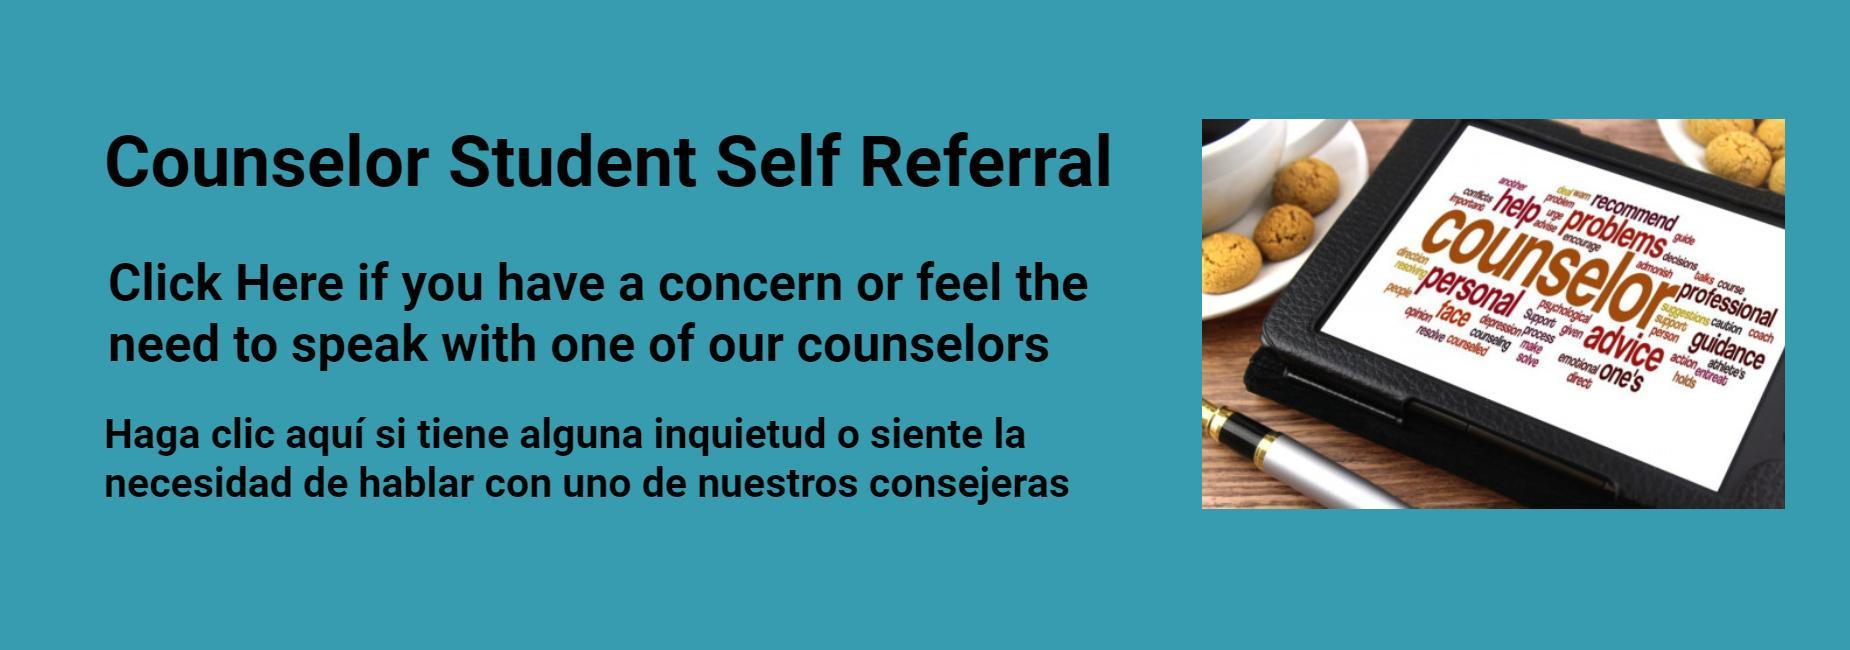 Counselor Self Referral